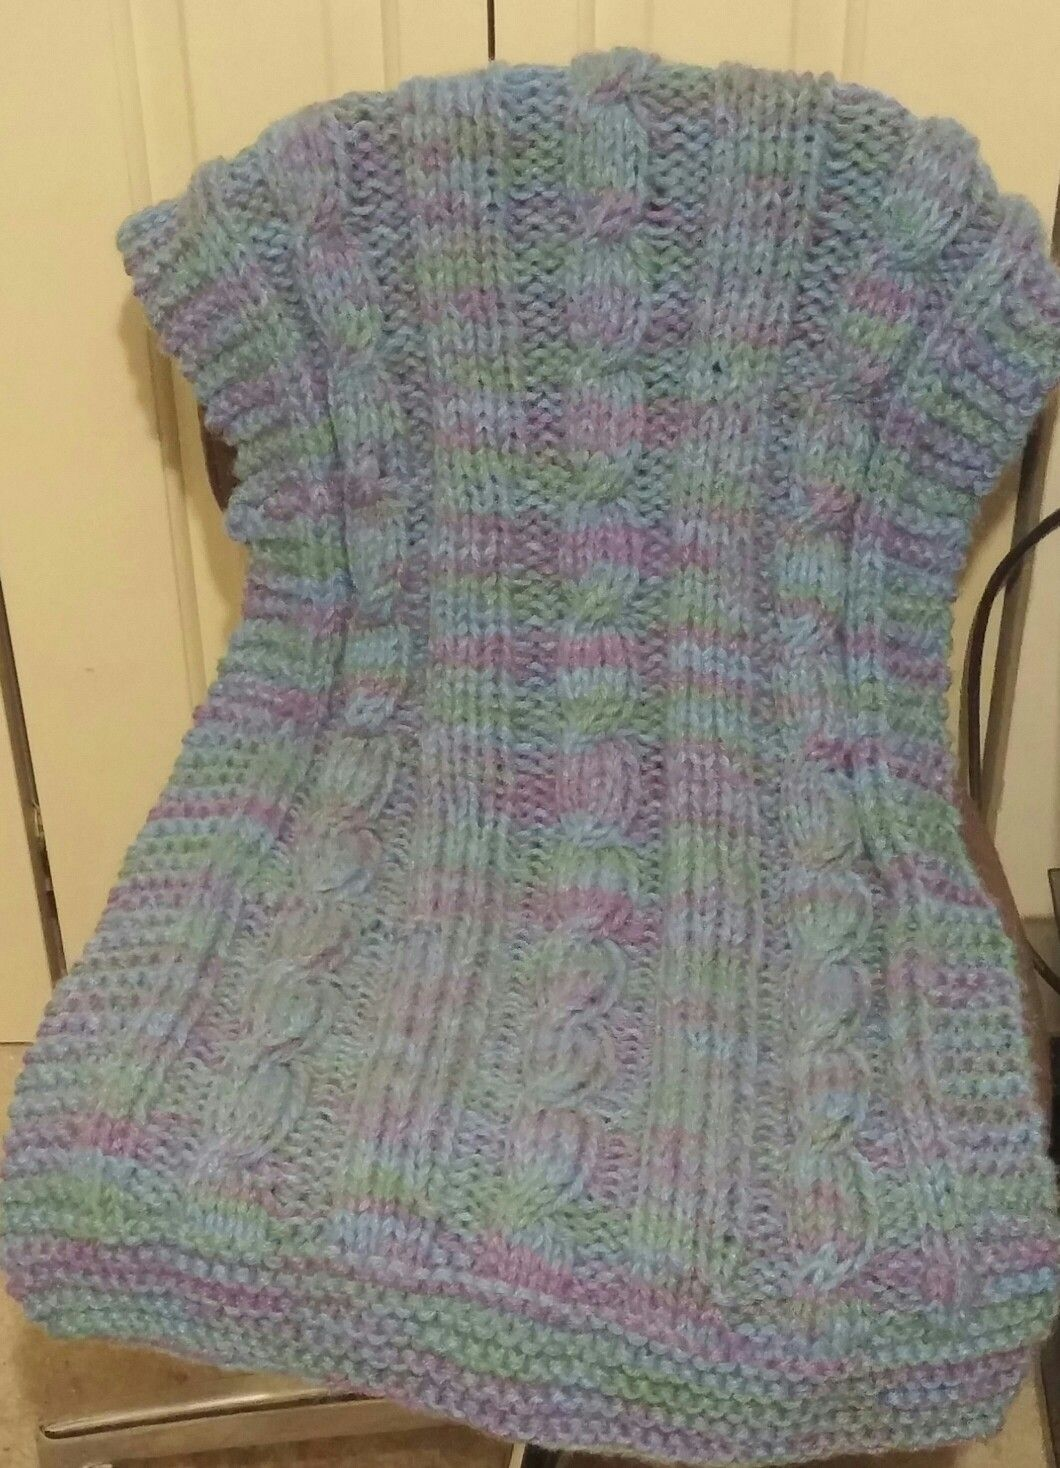 My finished project cable knit prayer shawl. I used Caron Dazzleaire ...